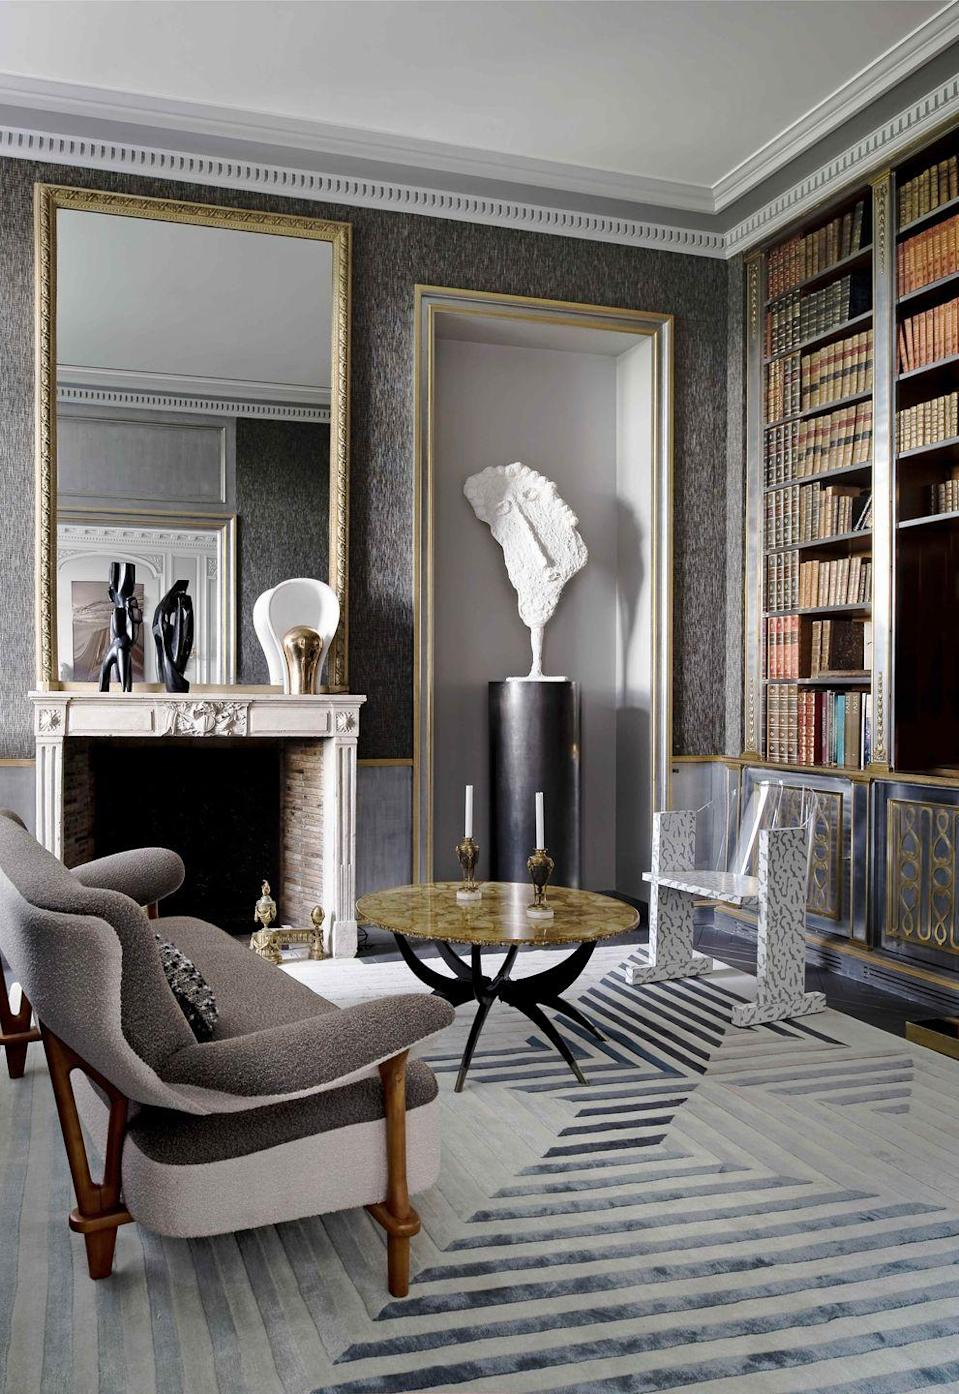 """<p>In this <a href=""""https://www.veranda.com/home-decorators/a30145127/jean-louis-deniot-paris-flat/"""" rel=""""nofollow noopener"""" target=""""_blank"""" data-ylk=""""slk:18th-century Paris flat"""" class=""""link rapid-noclick-resp"""">18th-century Paris flat</a> by designer Jean-Louis Deniot, a vintage Maison Jansen bookcase inspired the smokey tones and the layout of the library. The French designer moved the shelving originally in the dining room into its new home and repeated its metallic detailing in the wainscoting. The gold-trimmed alcove was designed specifically as a petite gallery for a figurative sculpture by Philippe Valentin.</p>"""